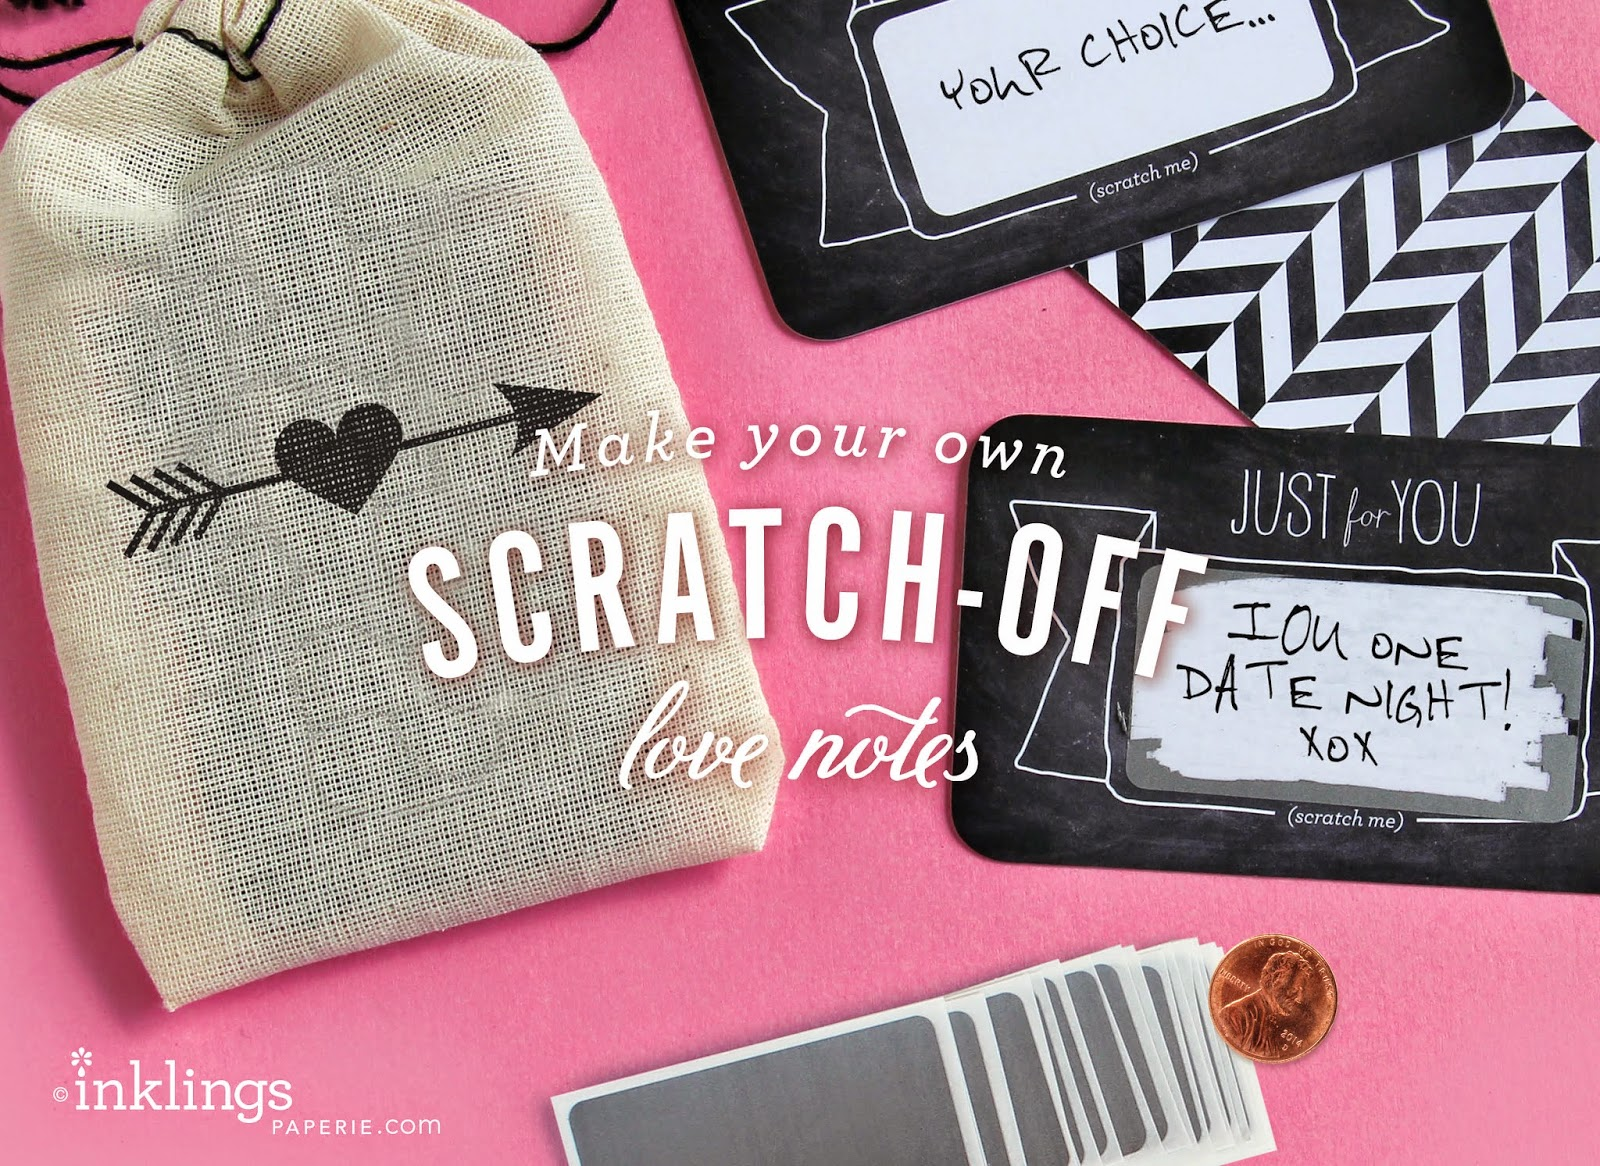 https://www.etsy.com/listing/219227174/20-scratch-off-love-notes-or-valentines?ref=shop_home_feat_4